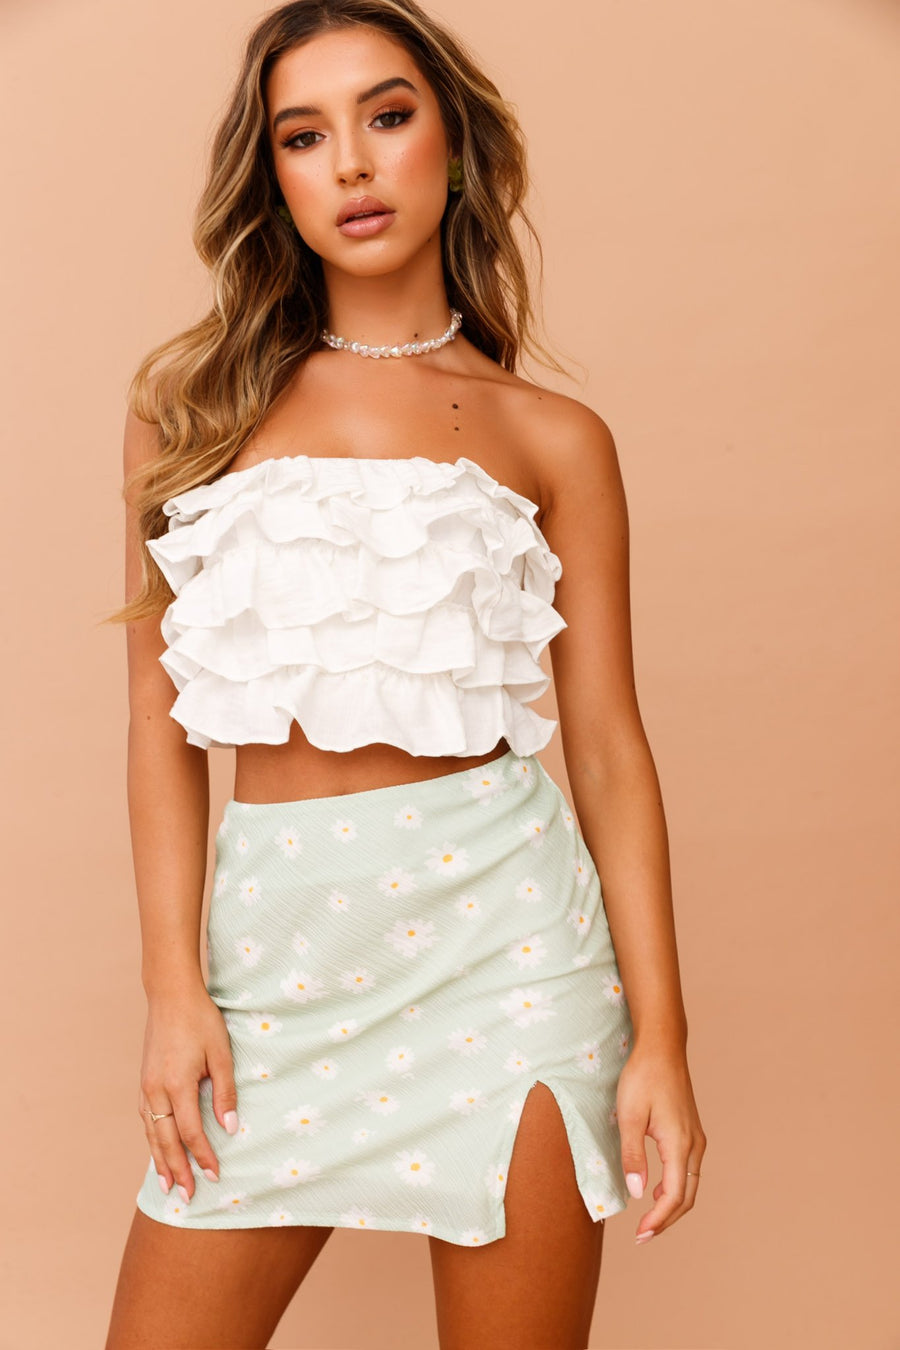 Ruffled Up Tube Top // White | Sage and Paige.?id=25072210182313